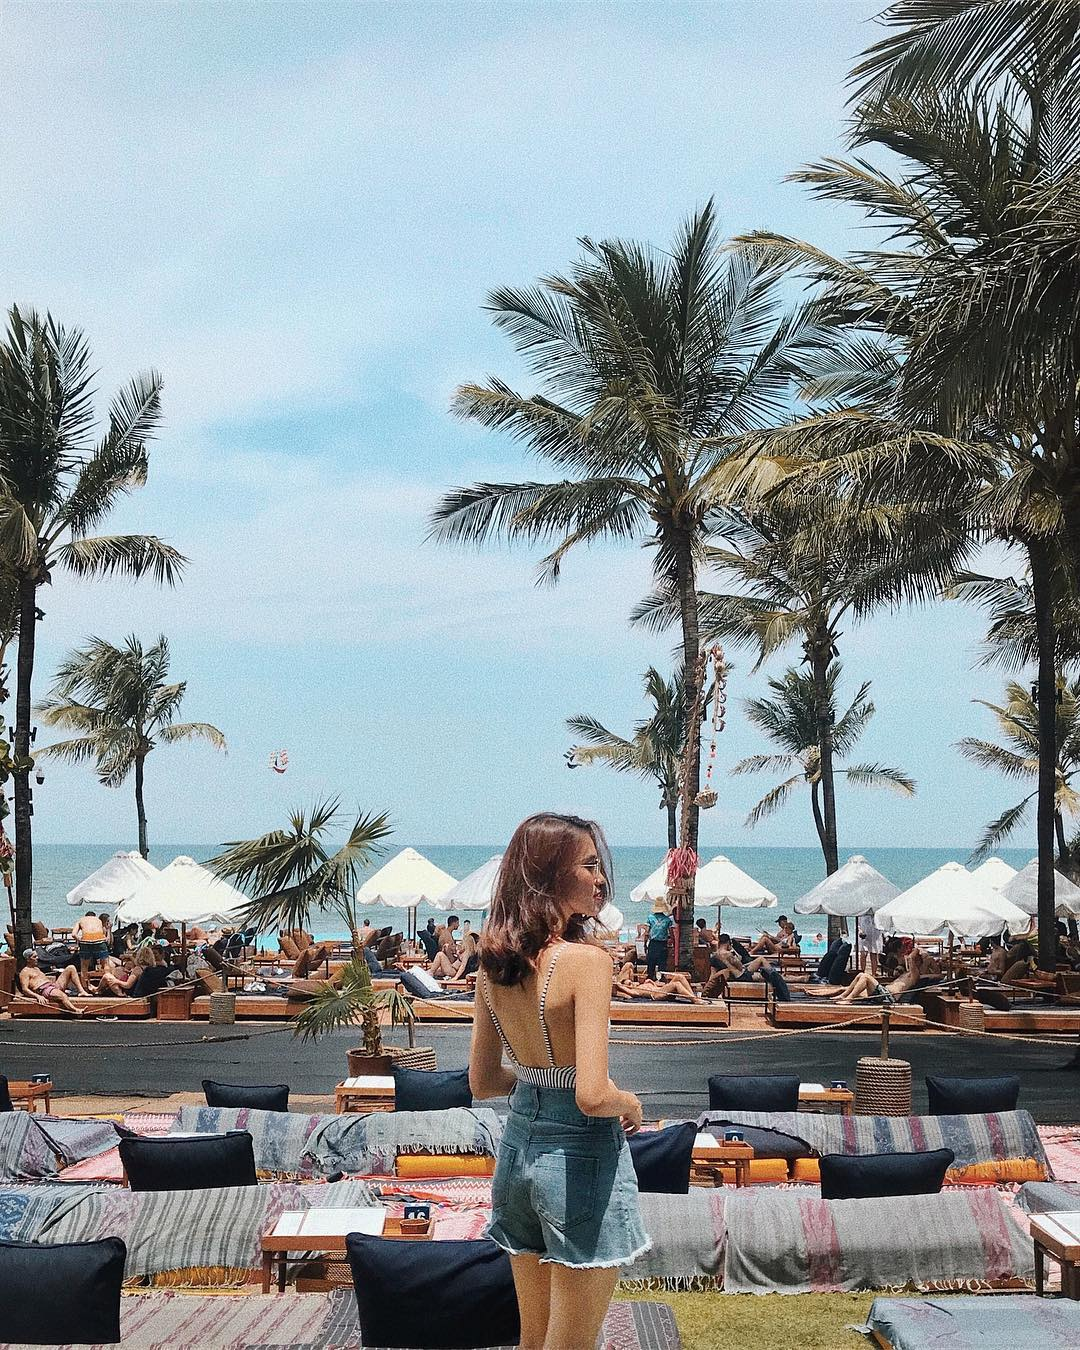 Bali Beach Club; Potato Head Beach Club